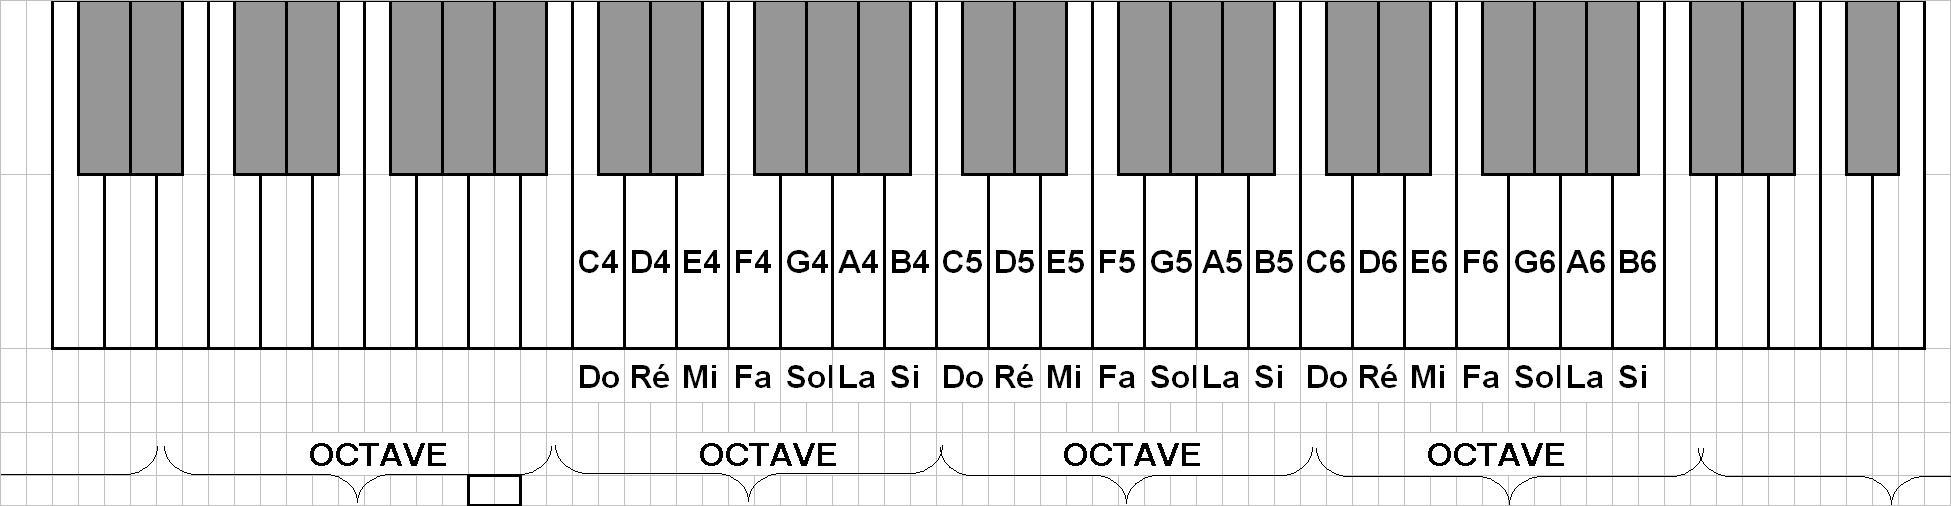 piano5octaves.jpg